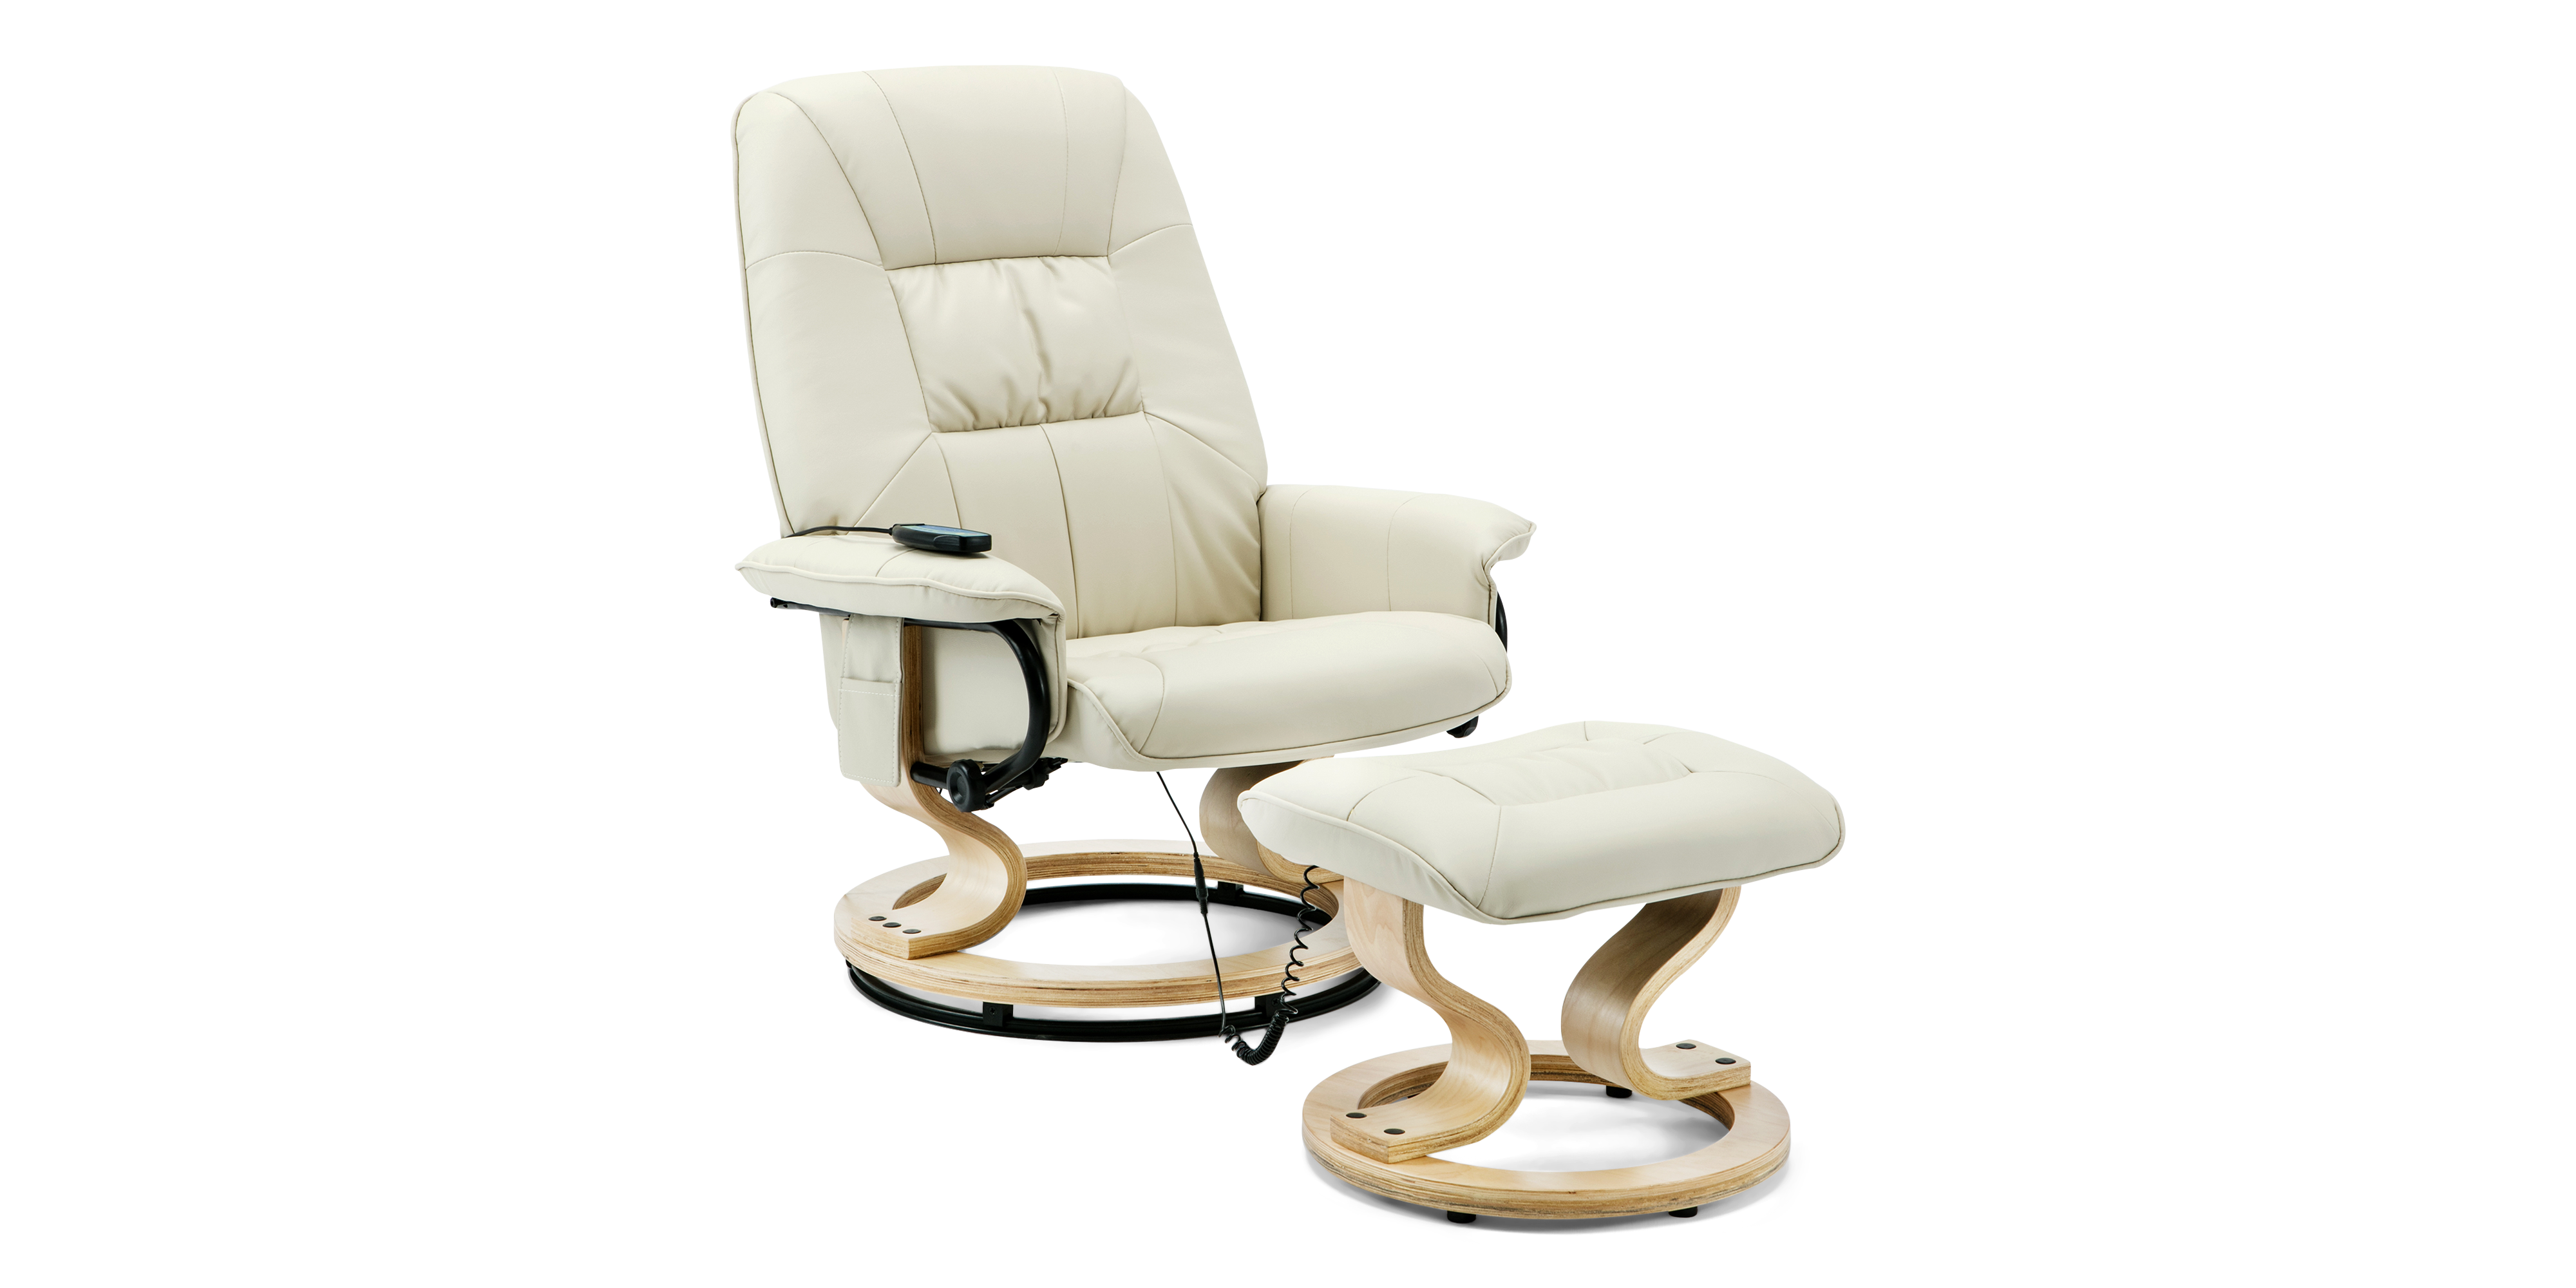 Tilbury Swivel Recliner Chair With Foot Stool In Cream